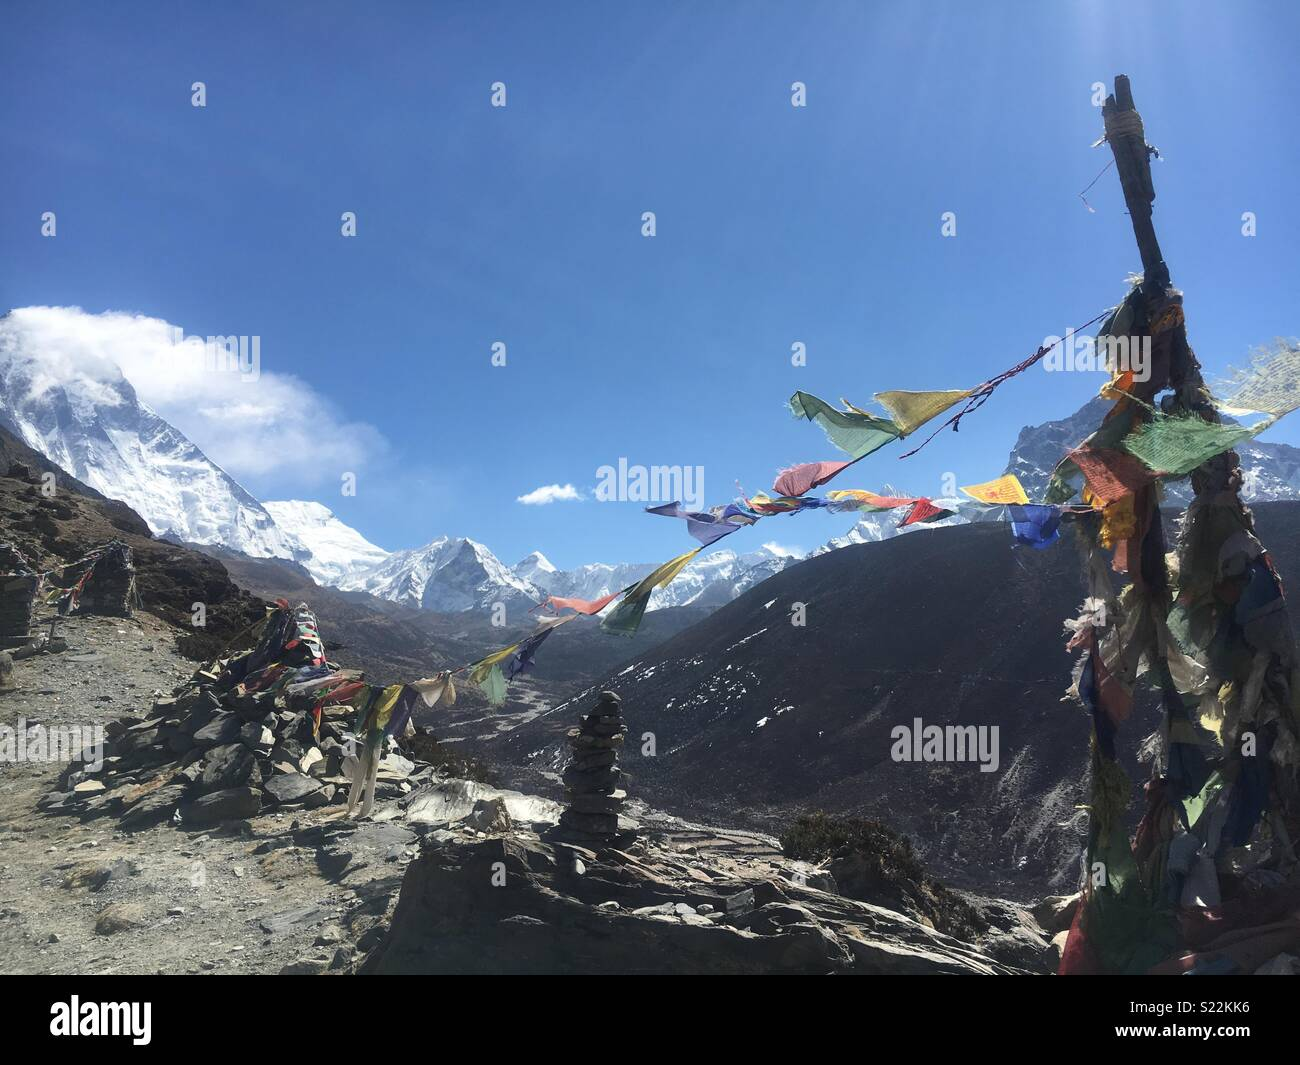 Prayer flags in the wind - Stock Image